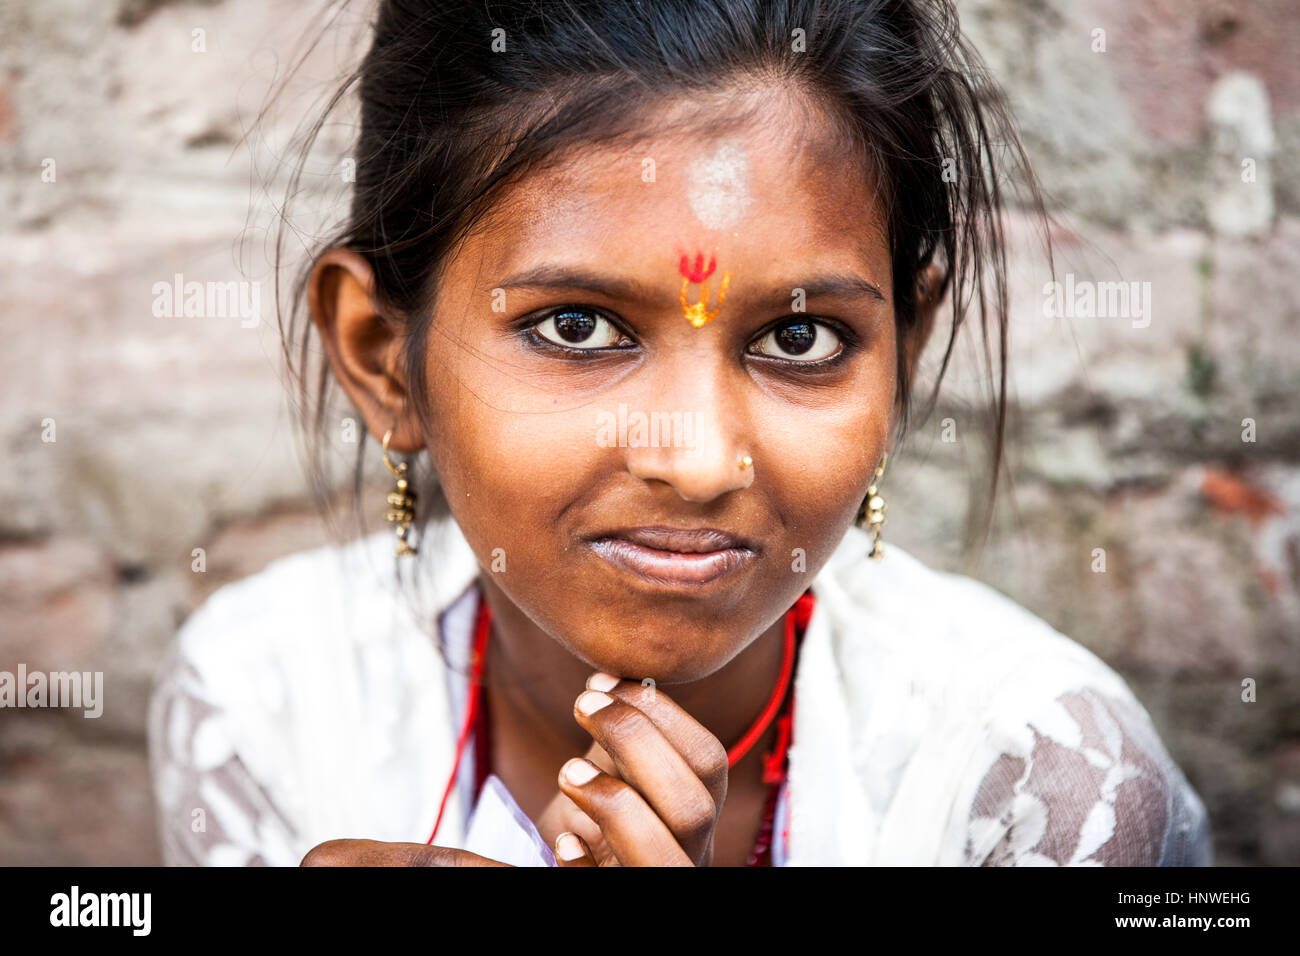 indian beauty young girl closeup stock photos & indian beauty young